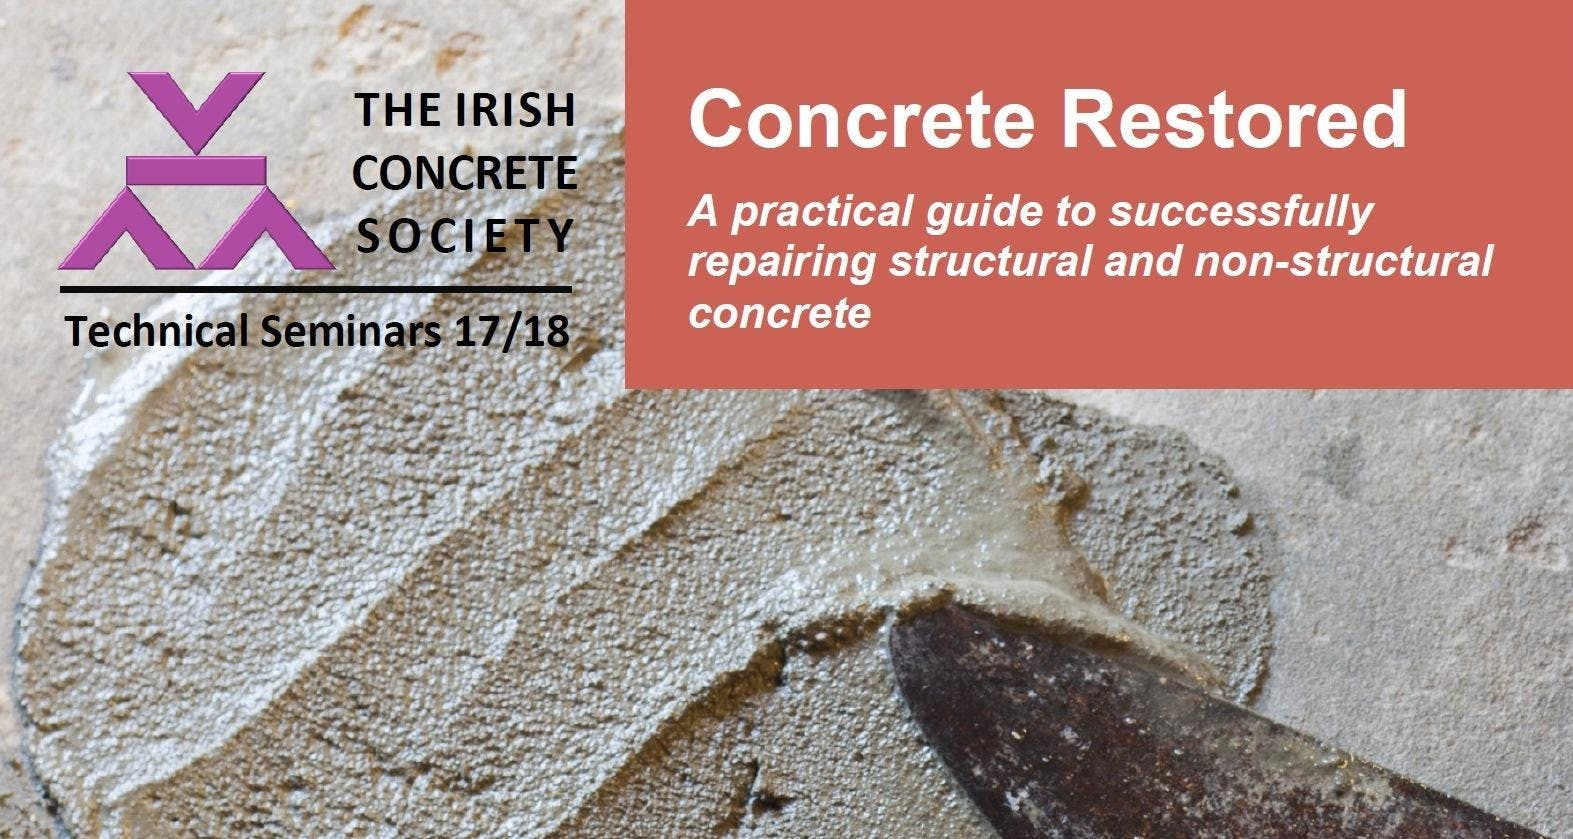 Concrete Restored - A practical guide to successfully repairing structural and non-structural concrete